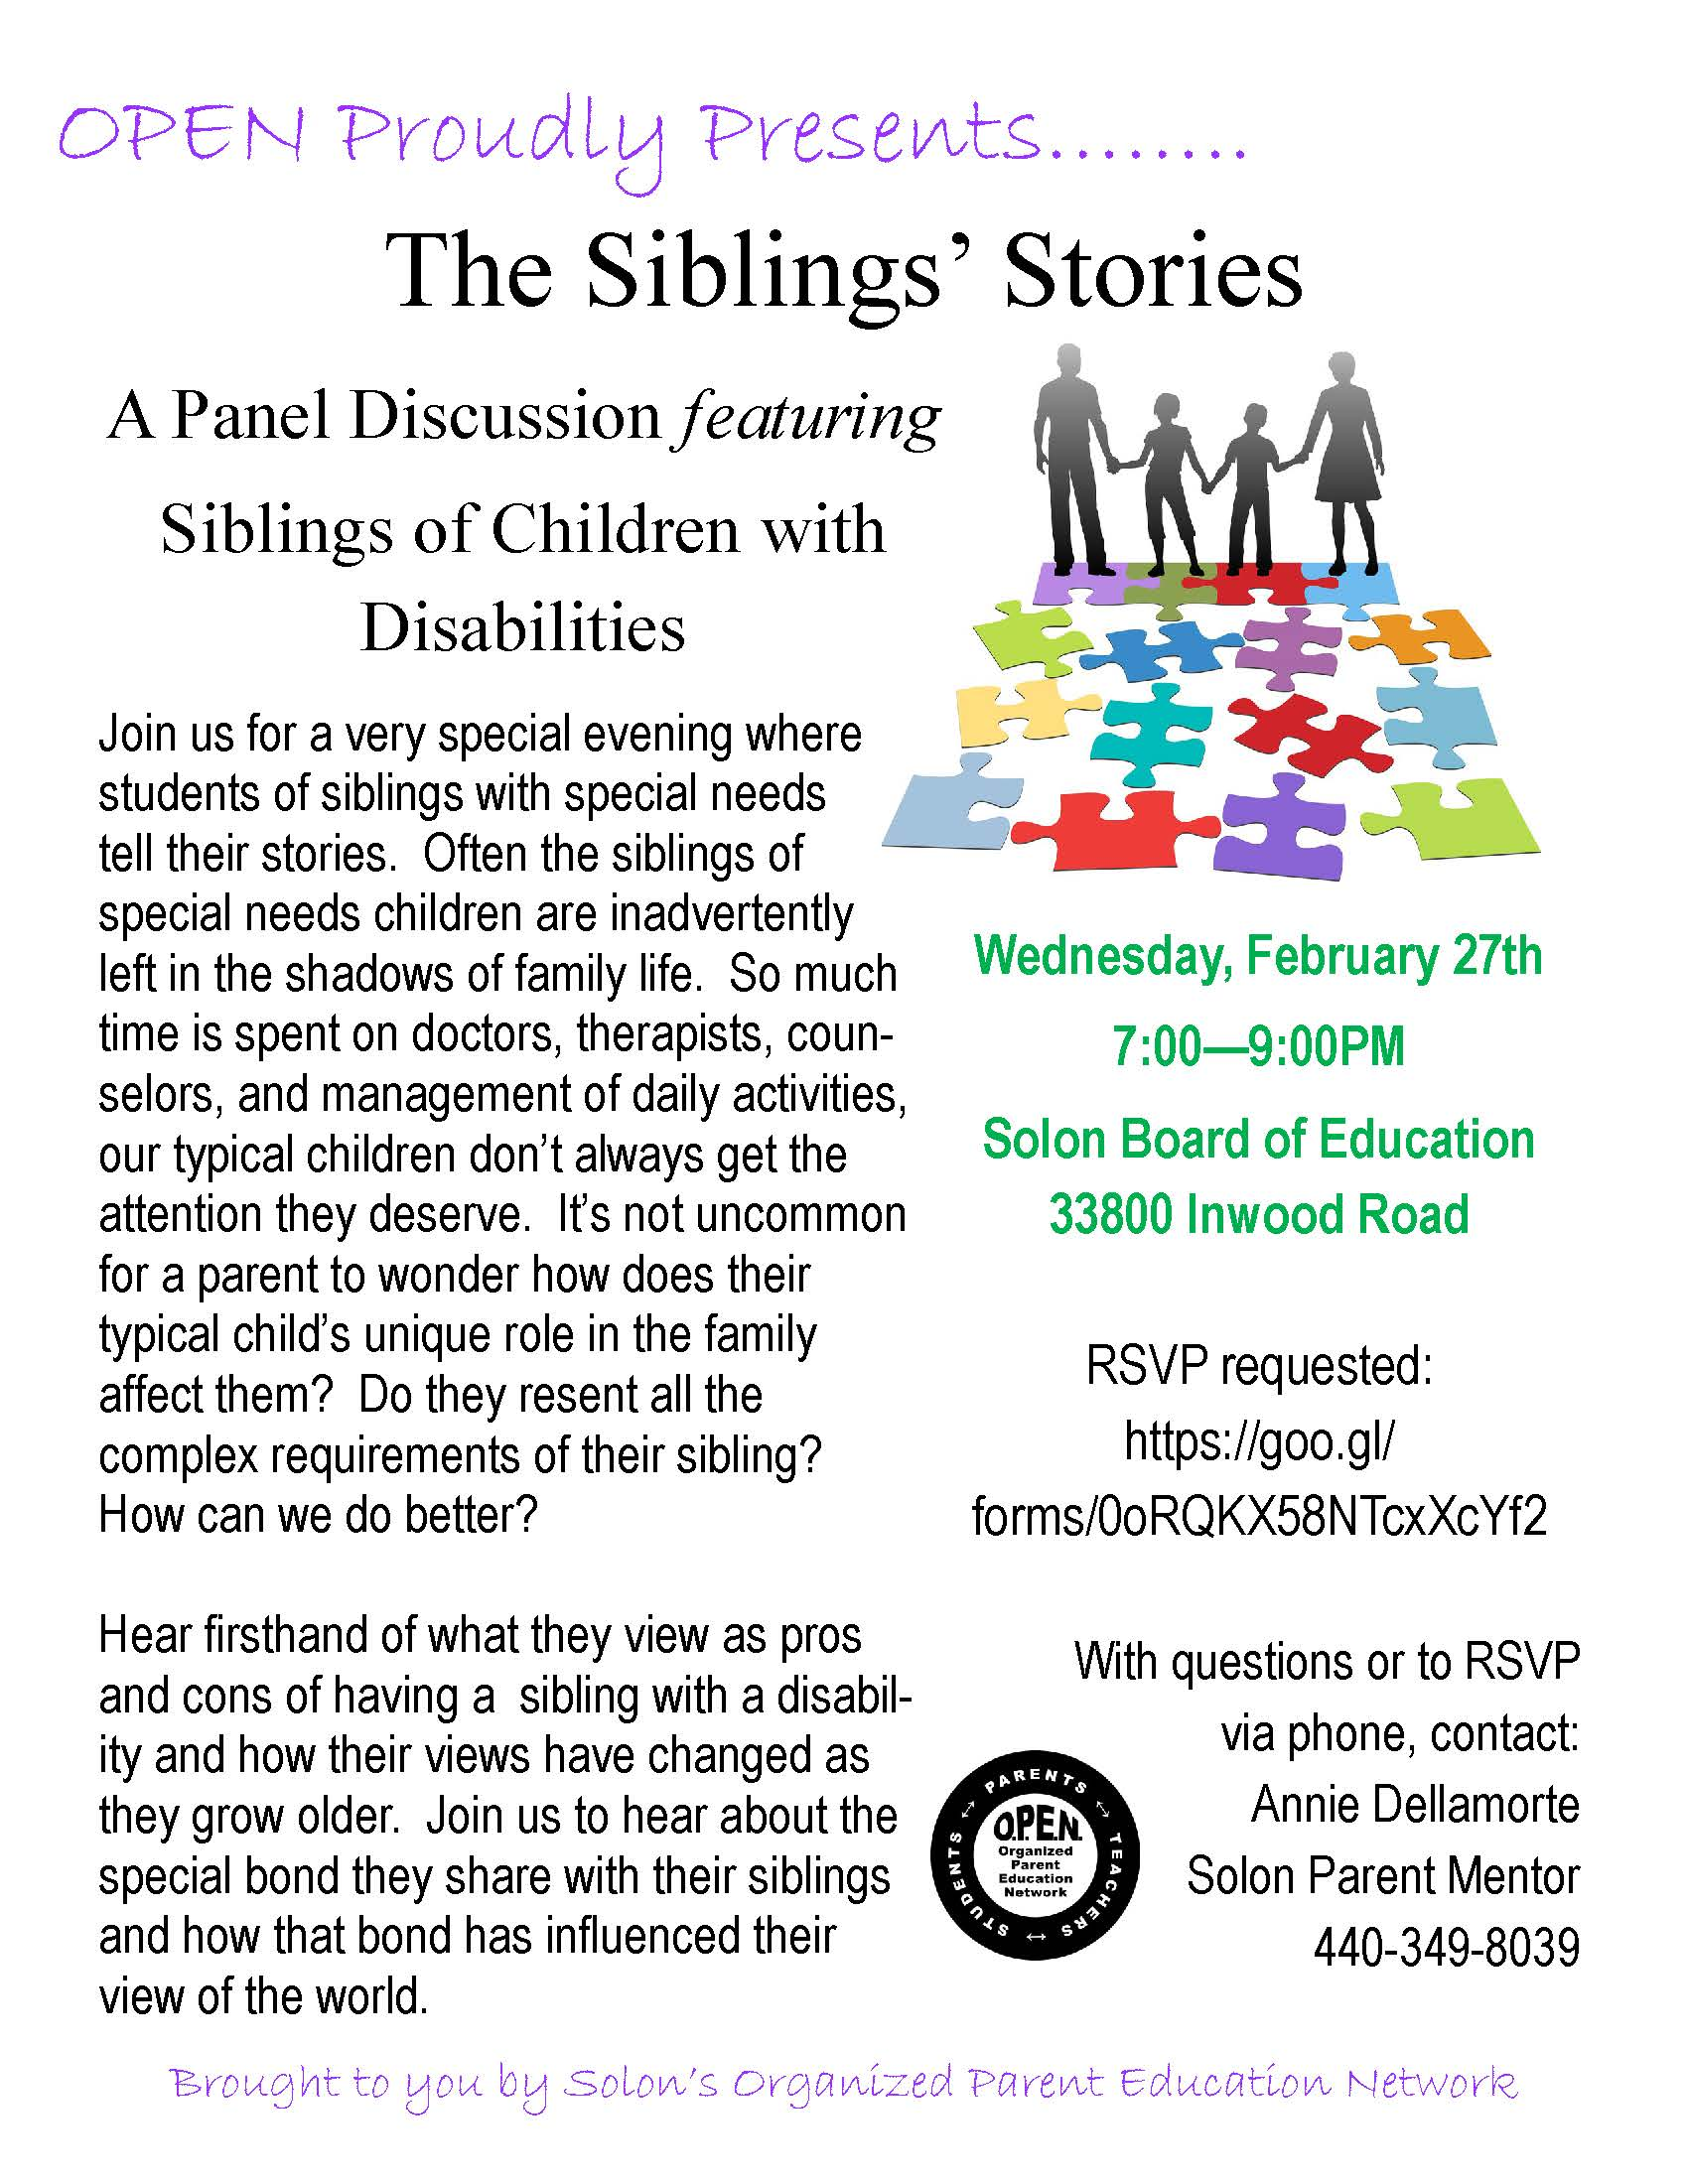 Flier for February 27 OPEN Program on Sibling Stories at 7 pm in the Board of Education Conference Room